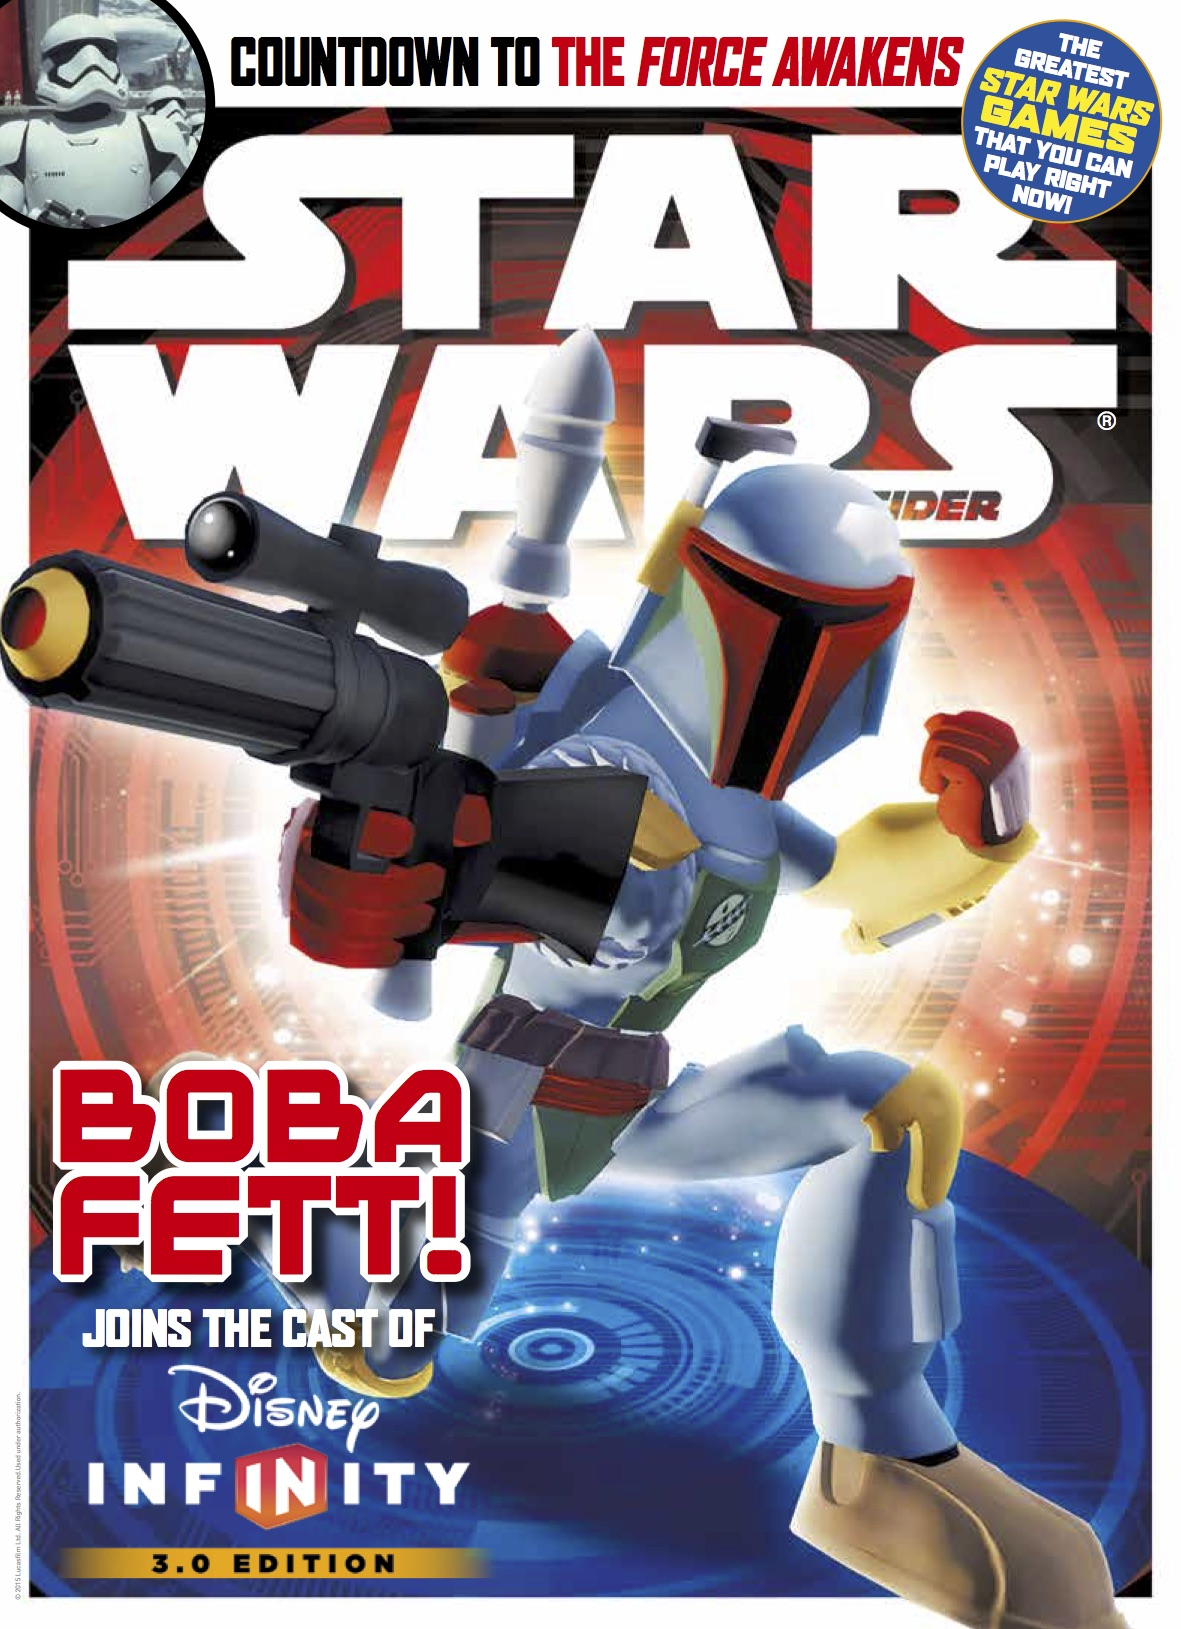 Star Wars Insider #161 - Boba Fett cover